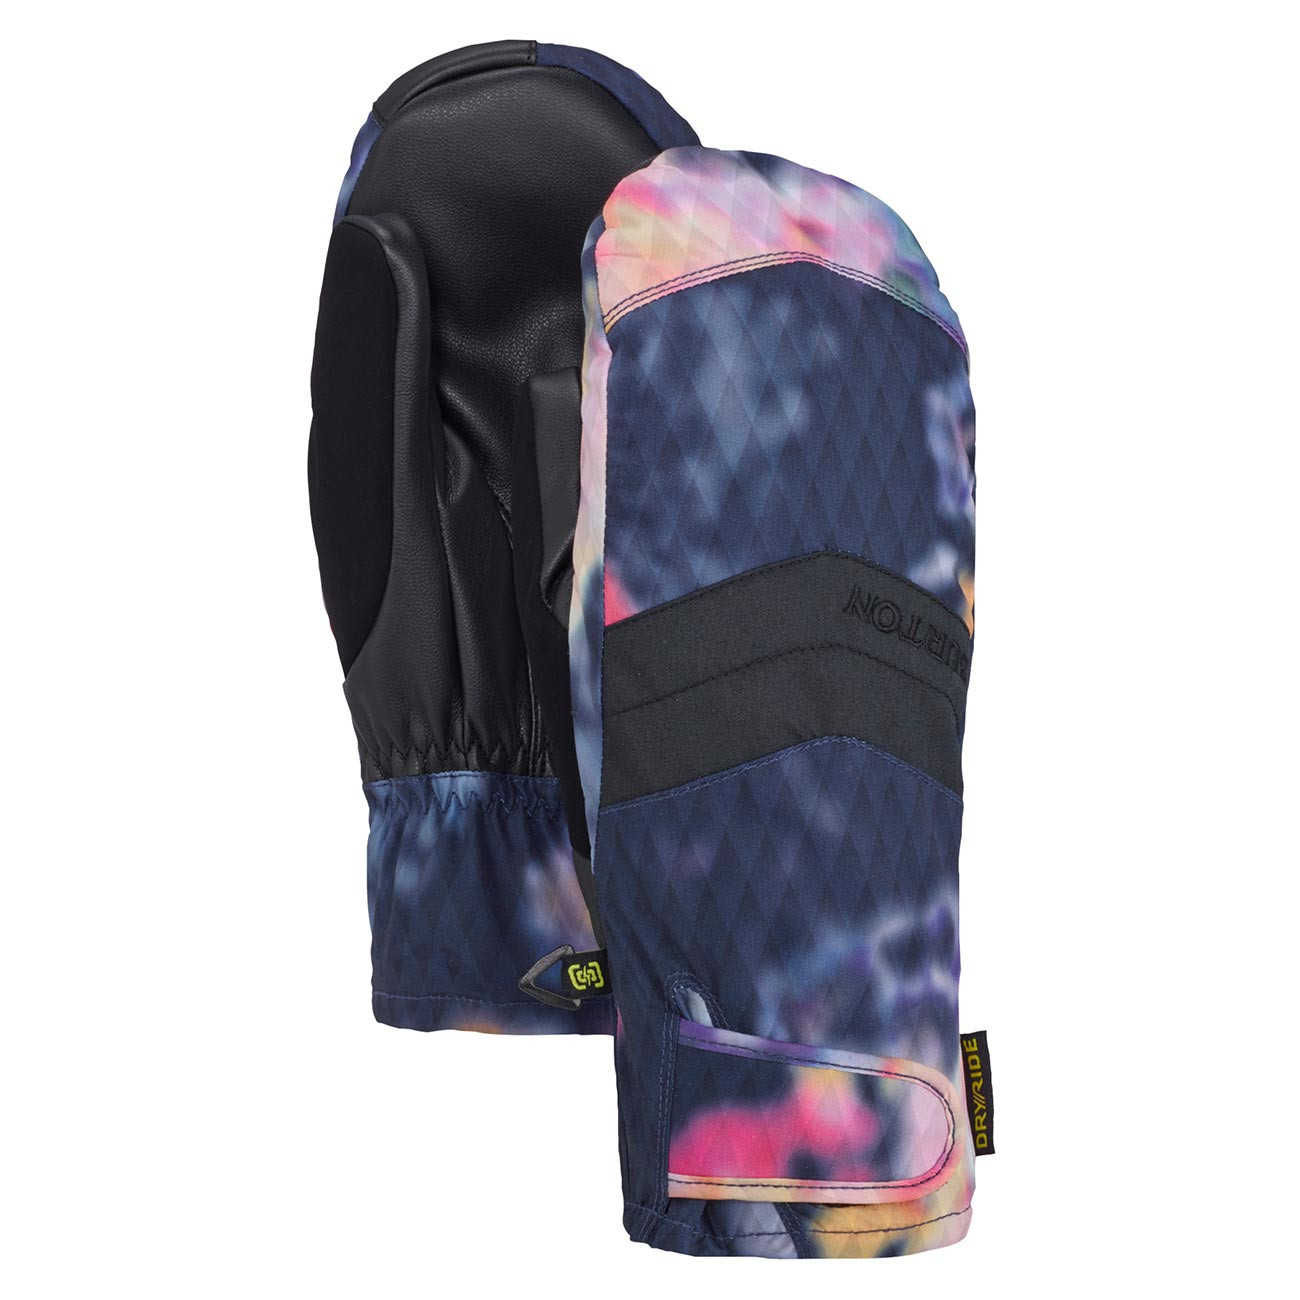 Rukavice Burton Wms Prospect Under Mitt prism floral/true black